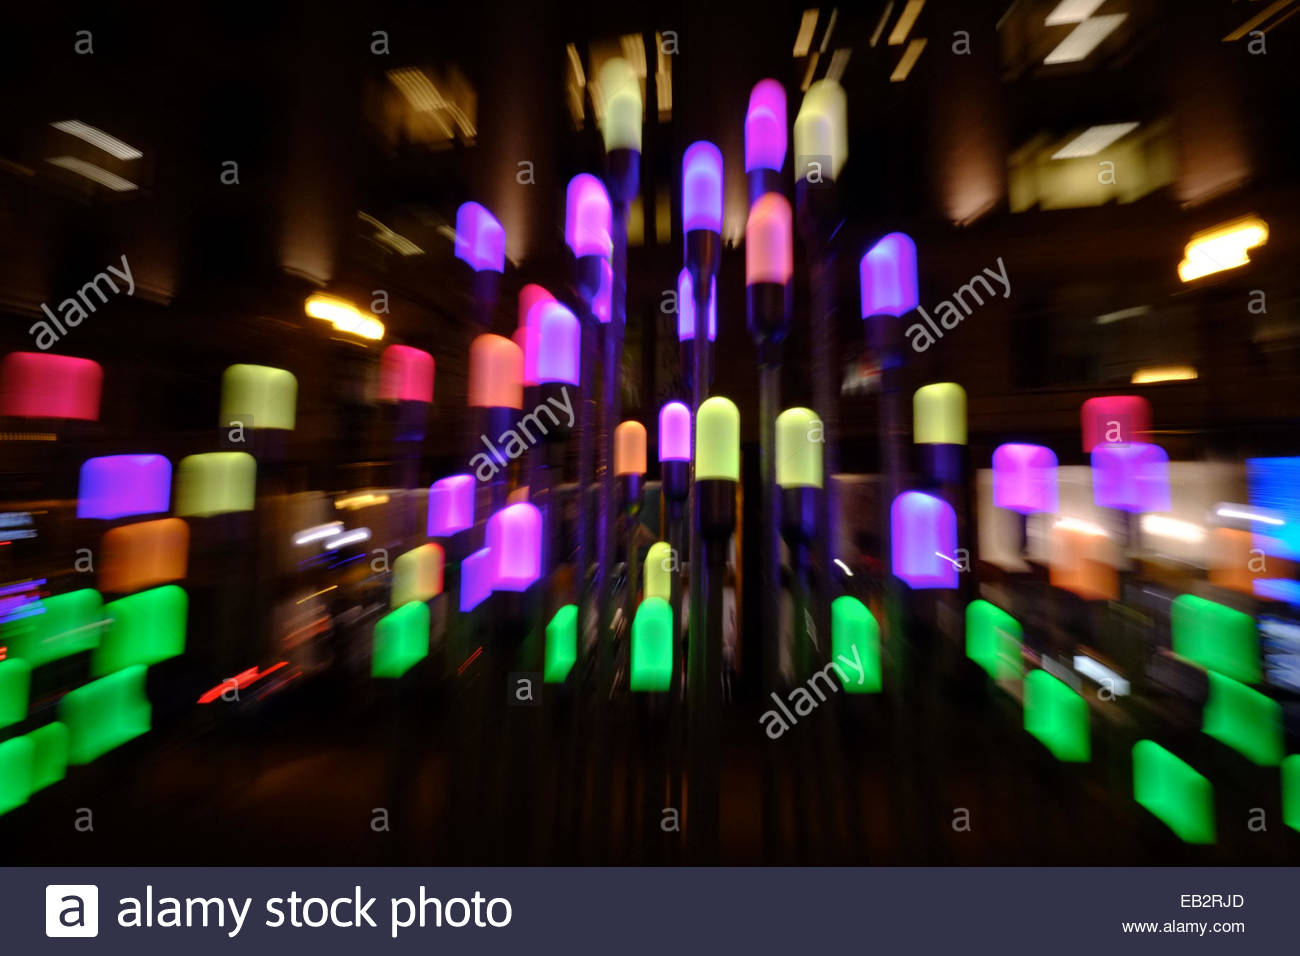 zoom lens view of colorful seasonal lights on state street in stock